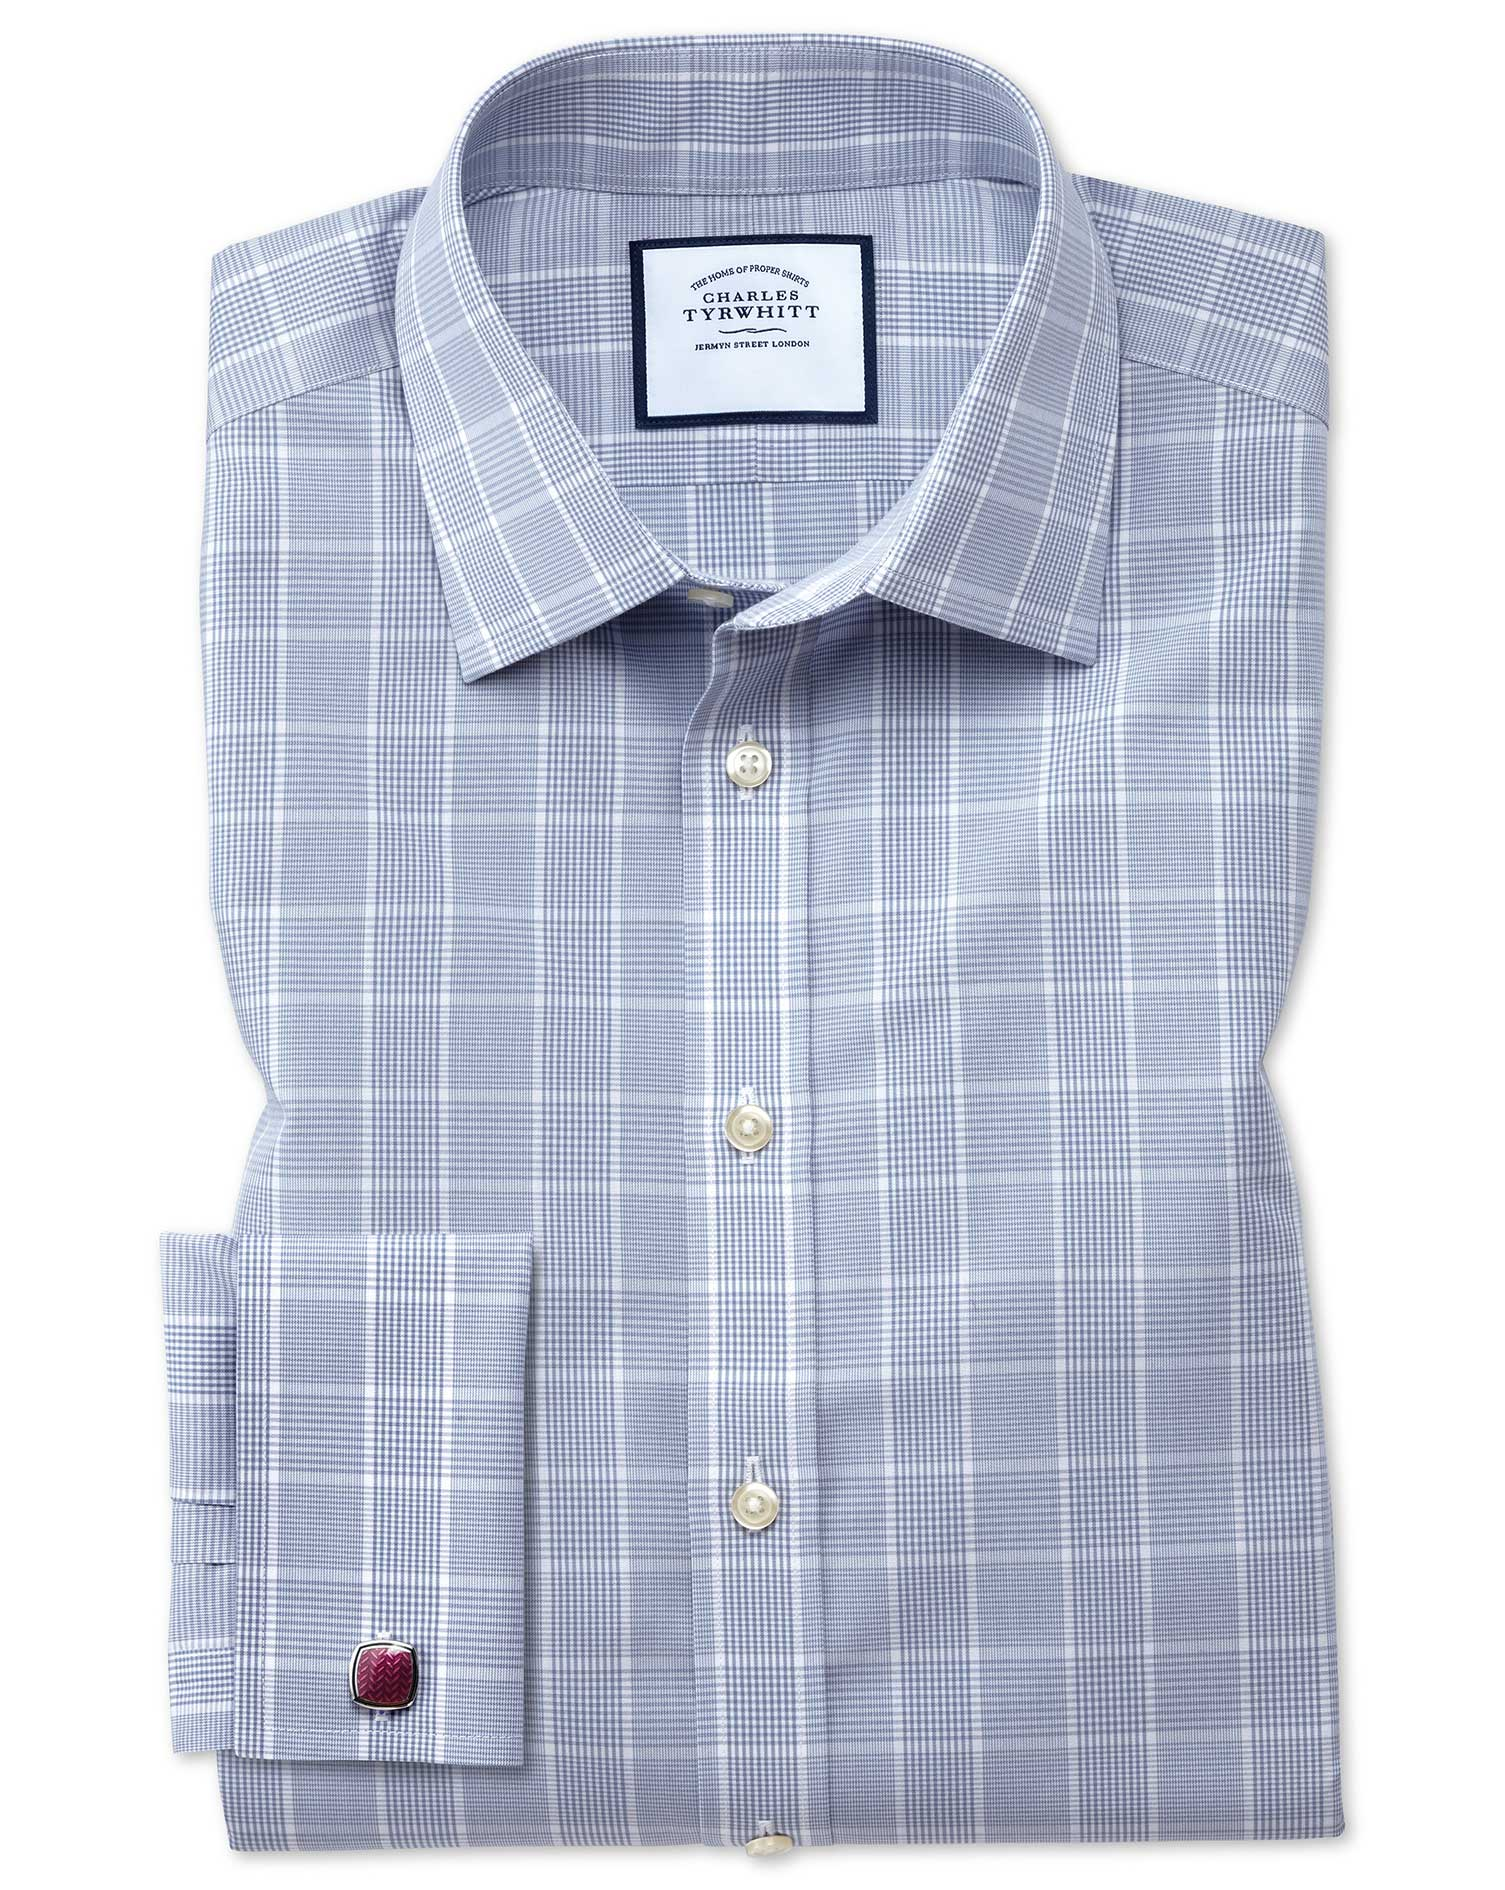 Slim Fit Non-Iron Prince Of Wales Grey Cotton Formal Shirt Double Cuff Size 17.5/34 by Charles Tyrwh